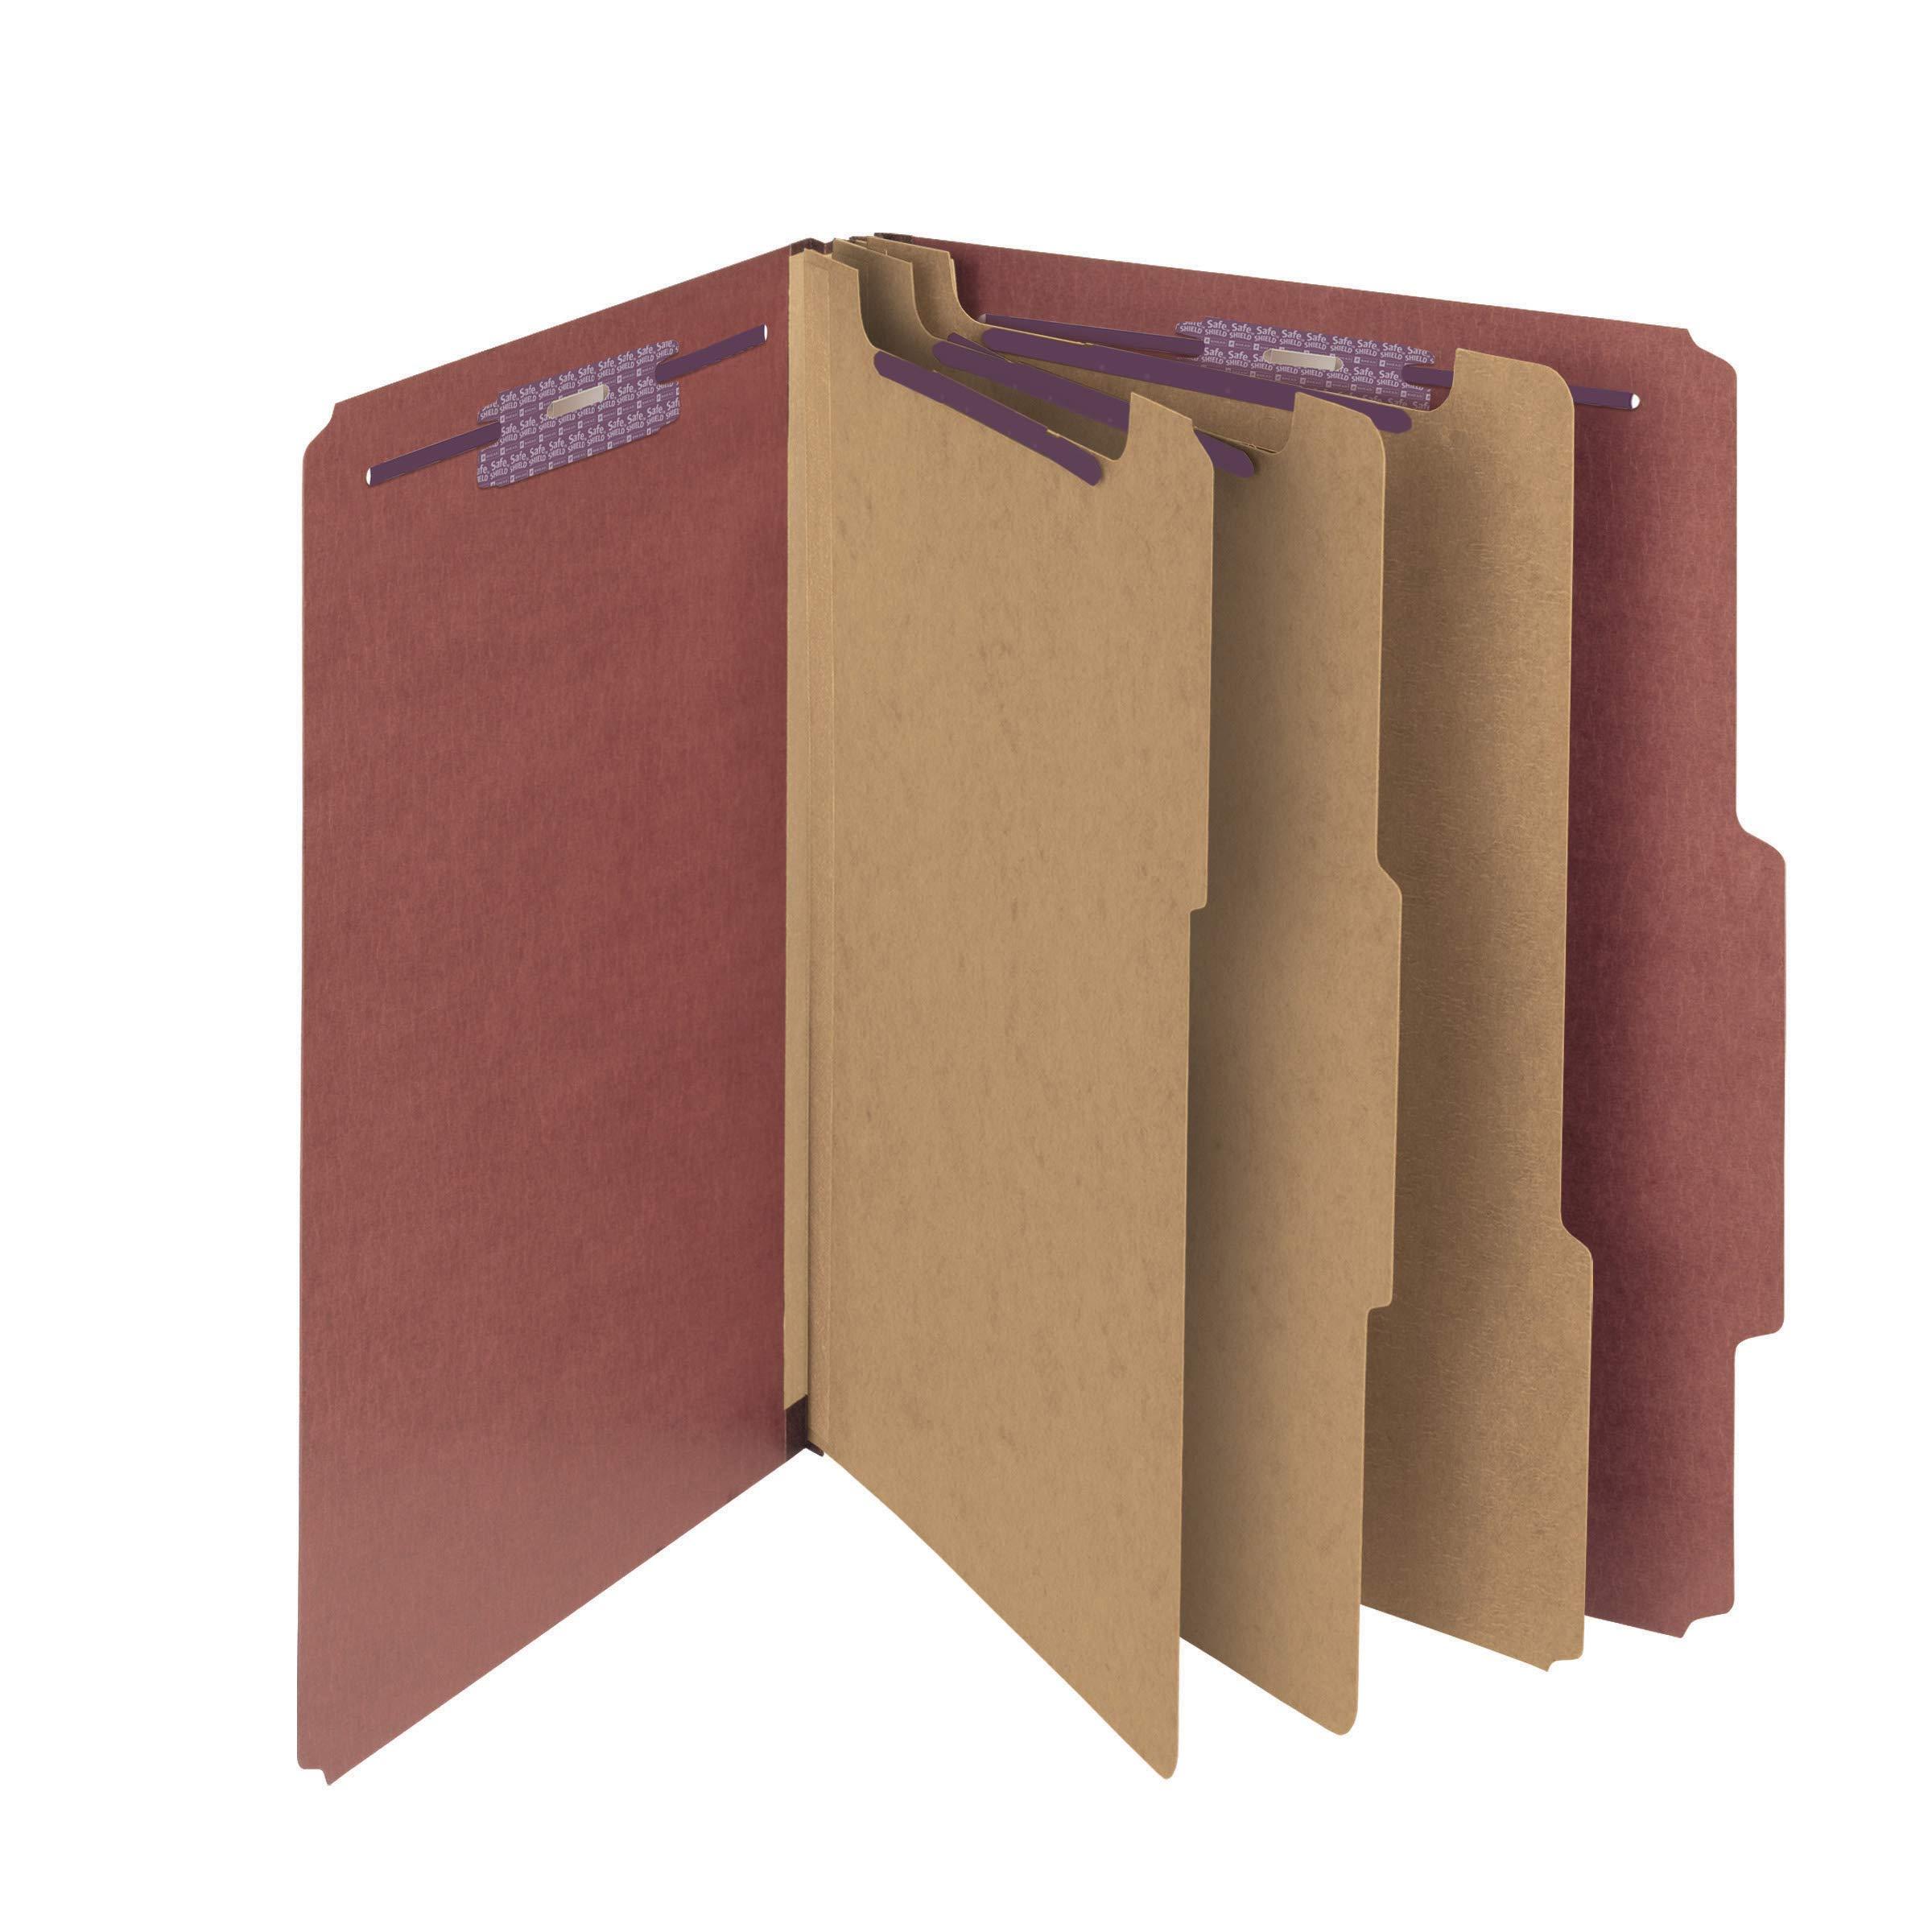 Smead Pressboard Classification File Folder with SafeSHIELD Fasteners, 3 Dividers, 3'' Expansion, Letter Size, Red, 10 per Box (14092)